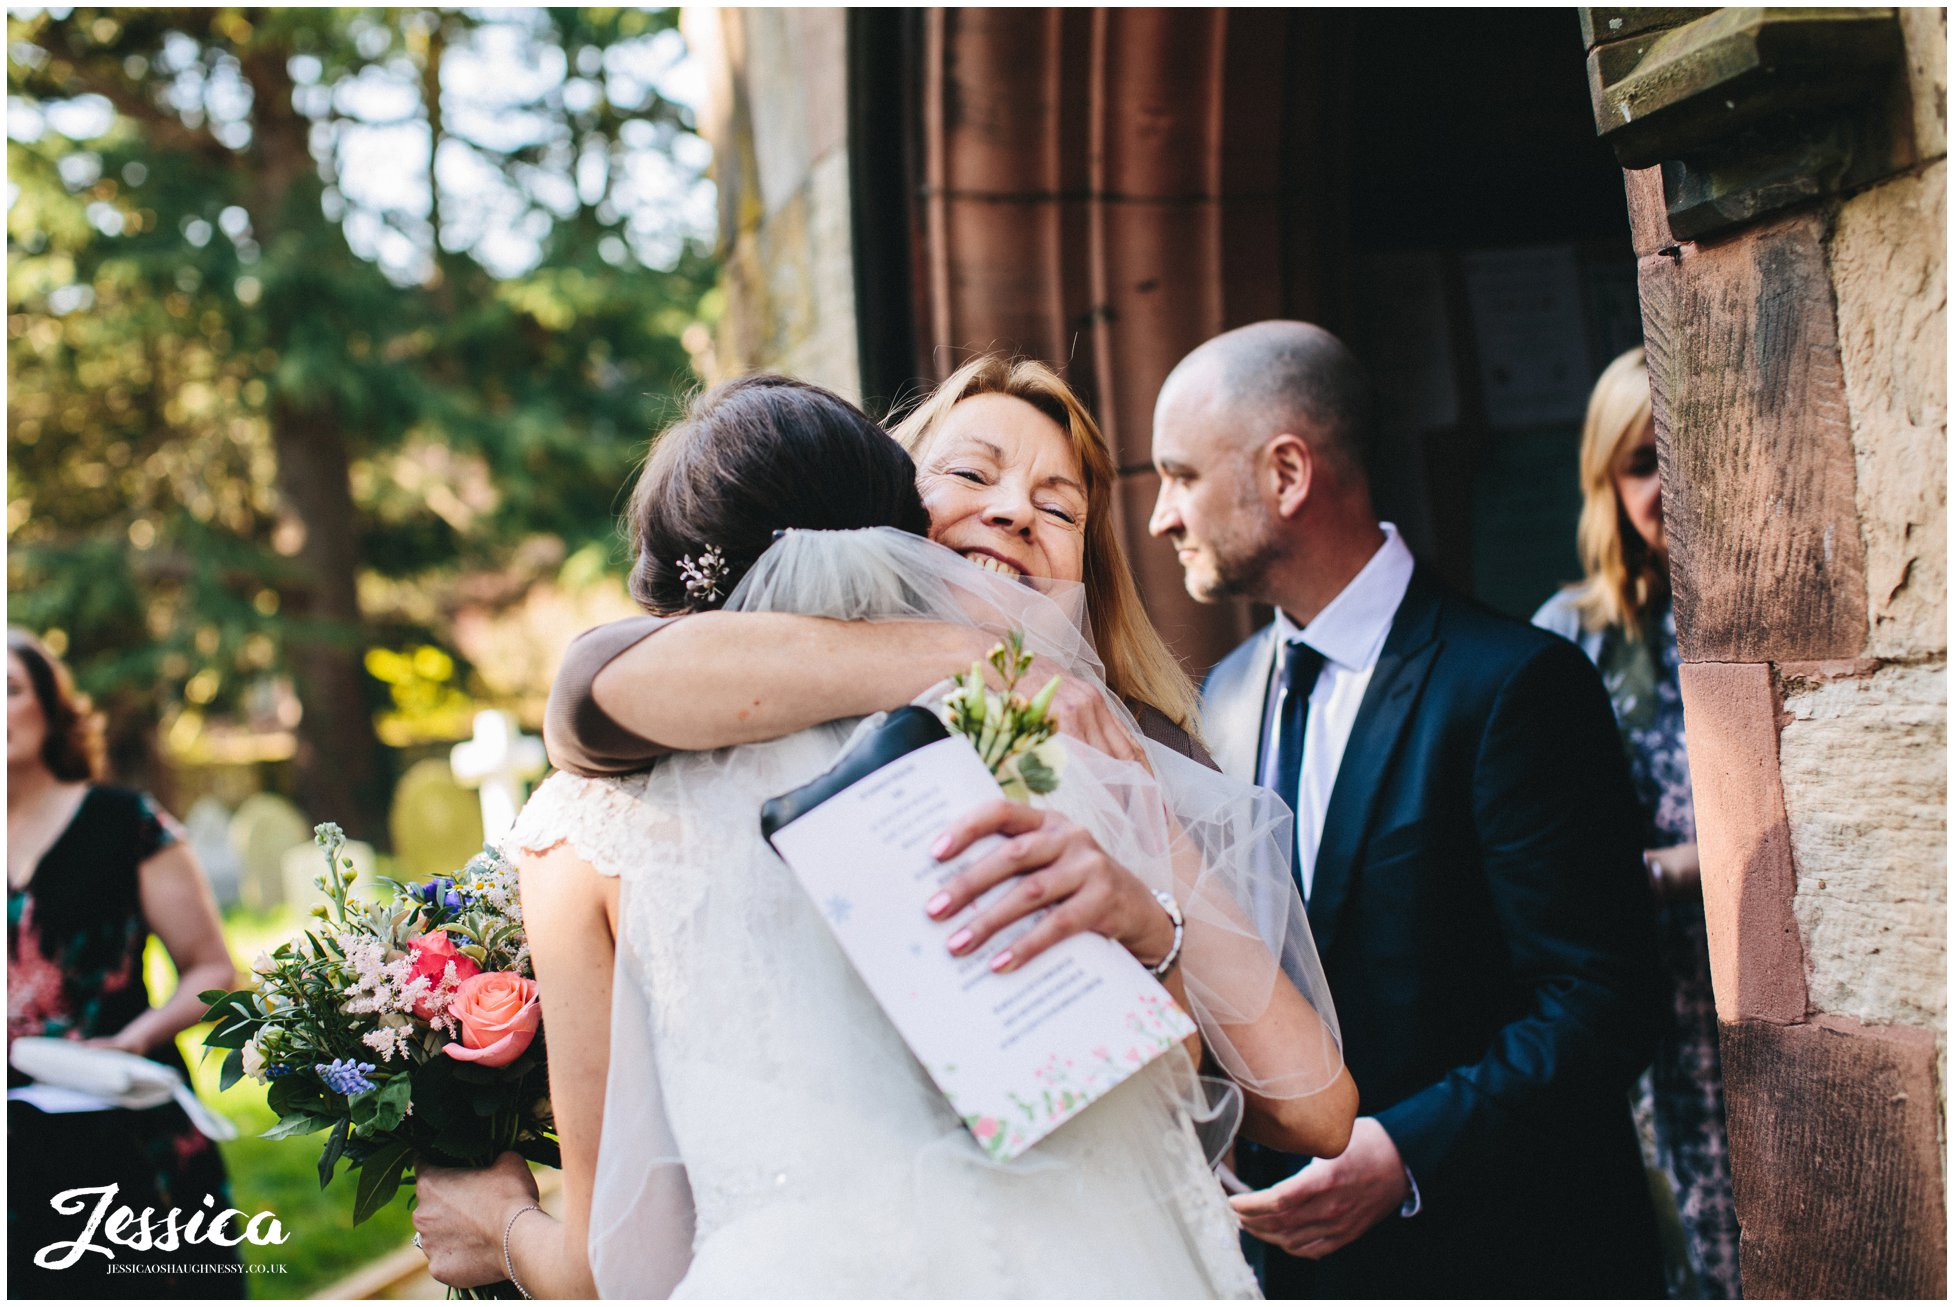 guest embraces the bride after the service at st deiniols church in north wales